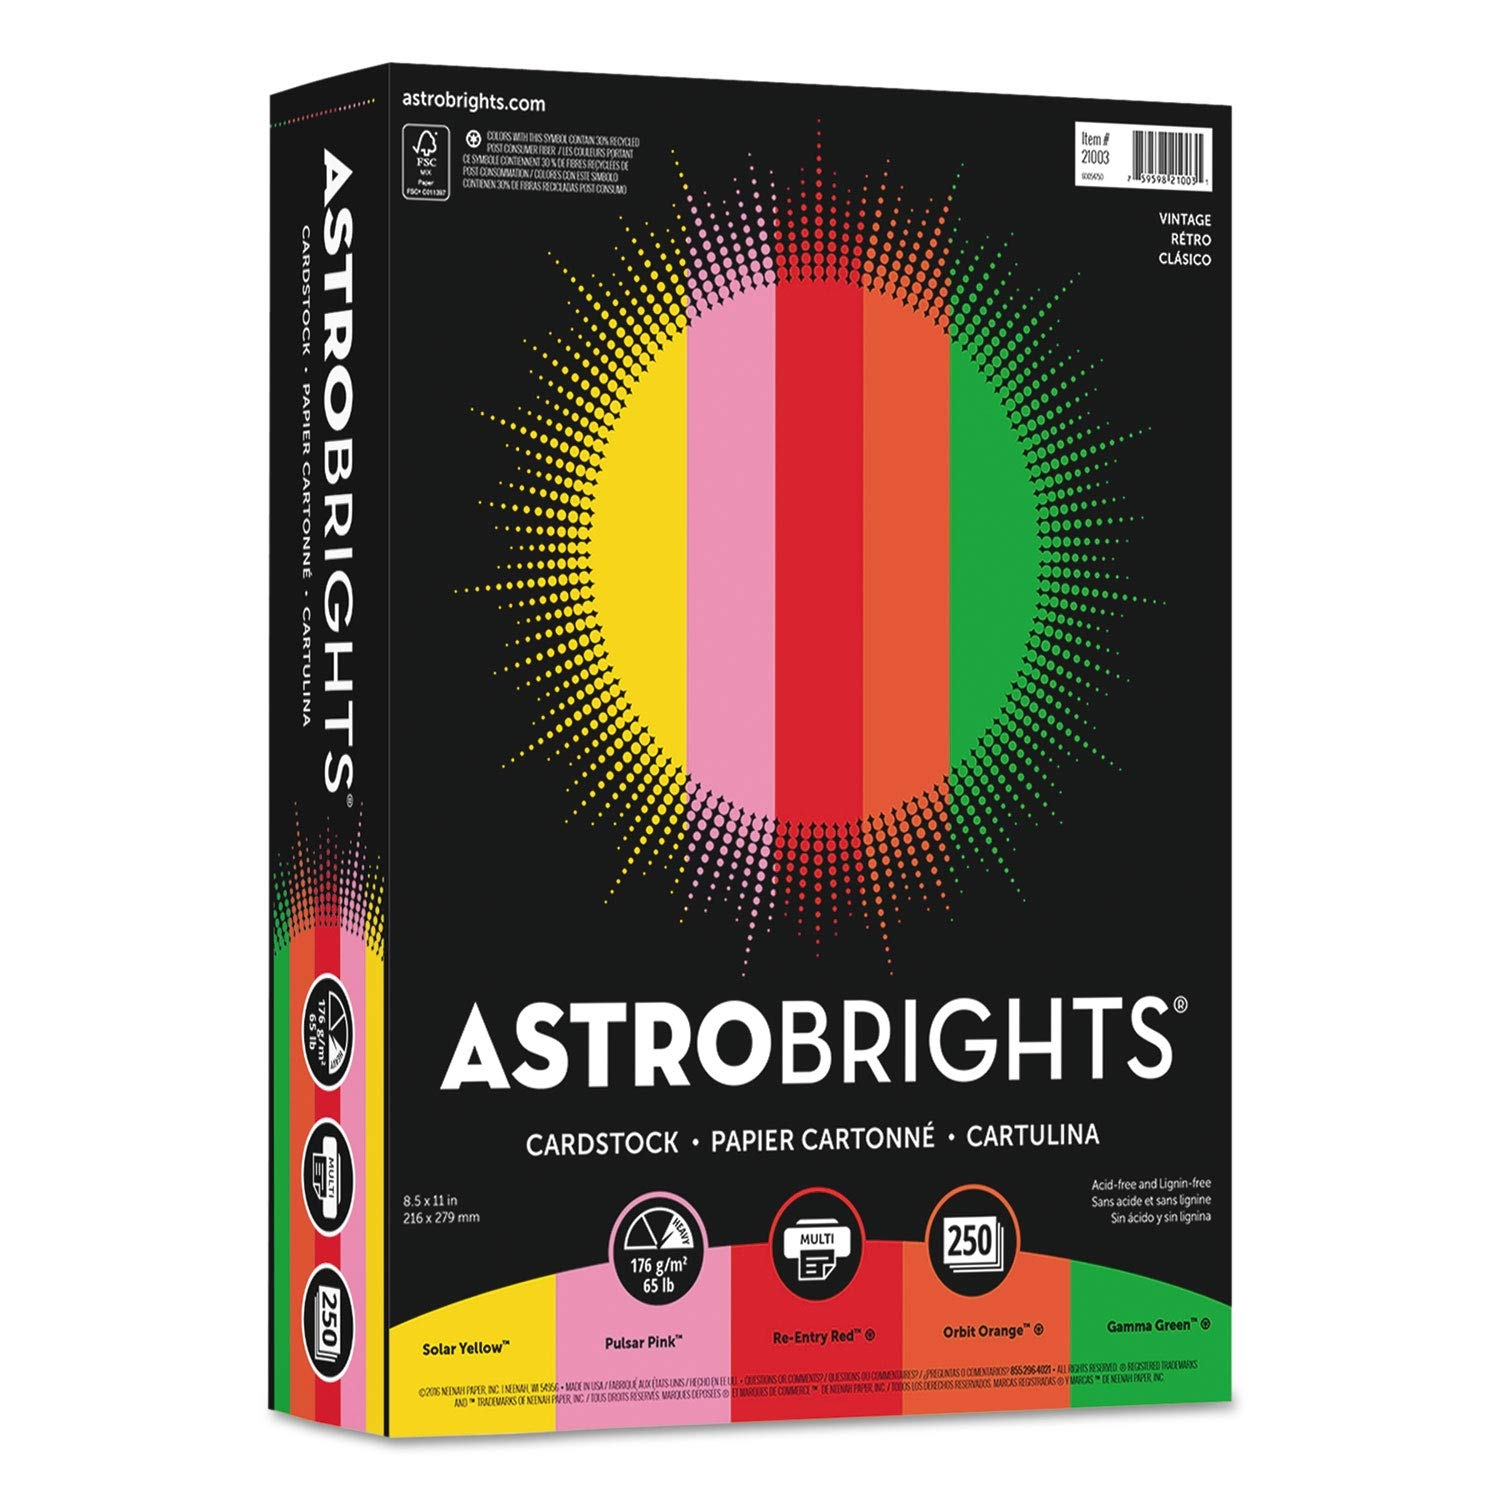 Astrobrights Color Cardstock, 65lb, 8 1/2 x 11, Assorted, 250 Sheets - 21003, (Pack of 2) by Astrobrights (Image #1)